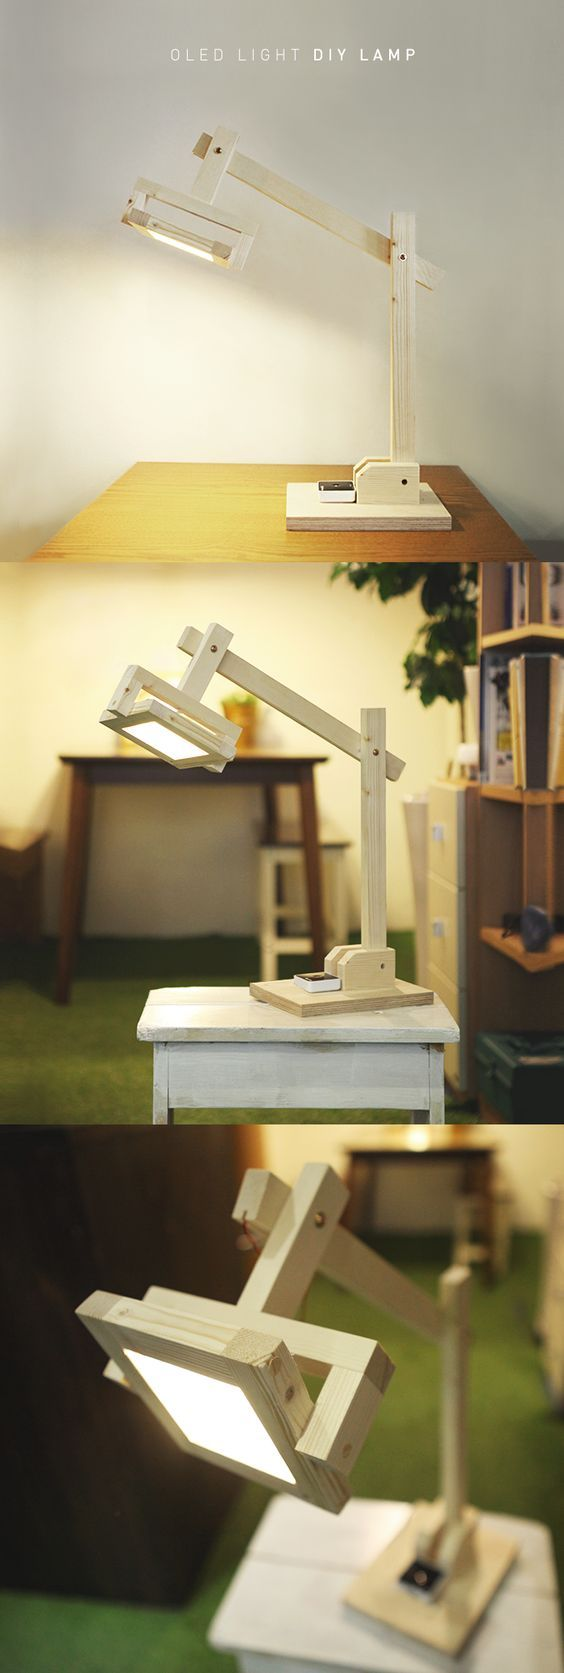 Do It Yourself Lighting: 35 Best OLED Do It Yourself Images On Pinterest